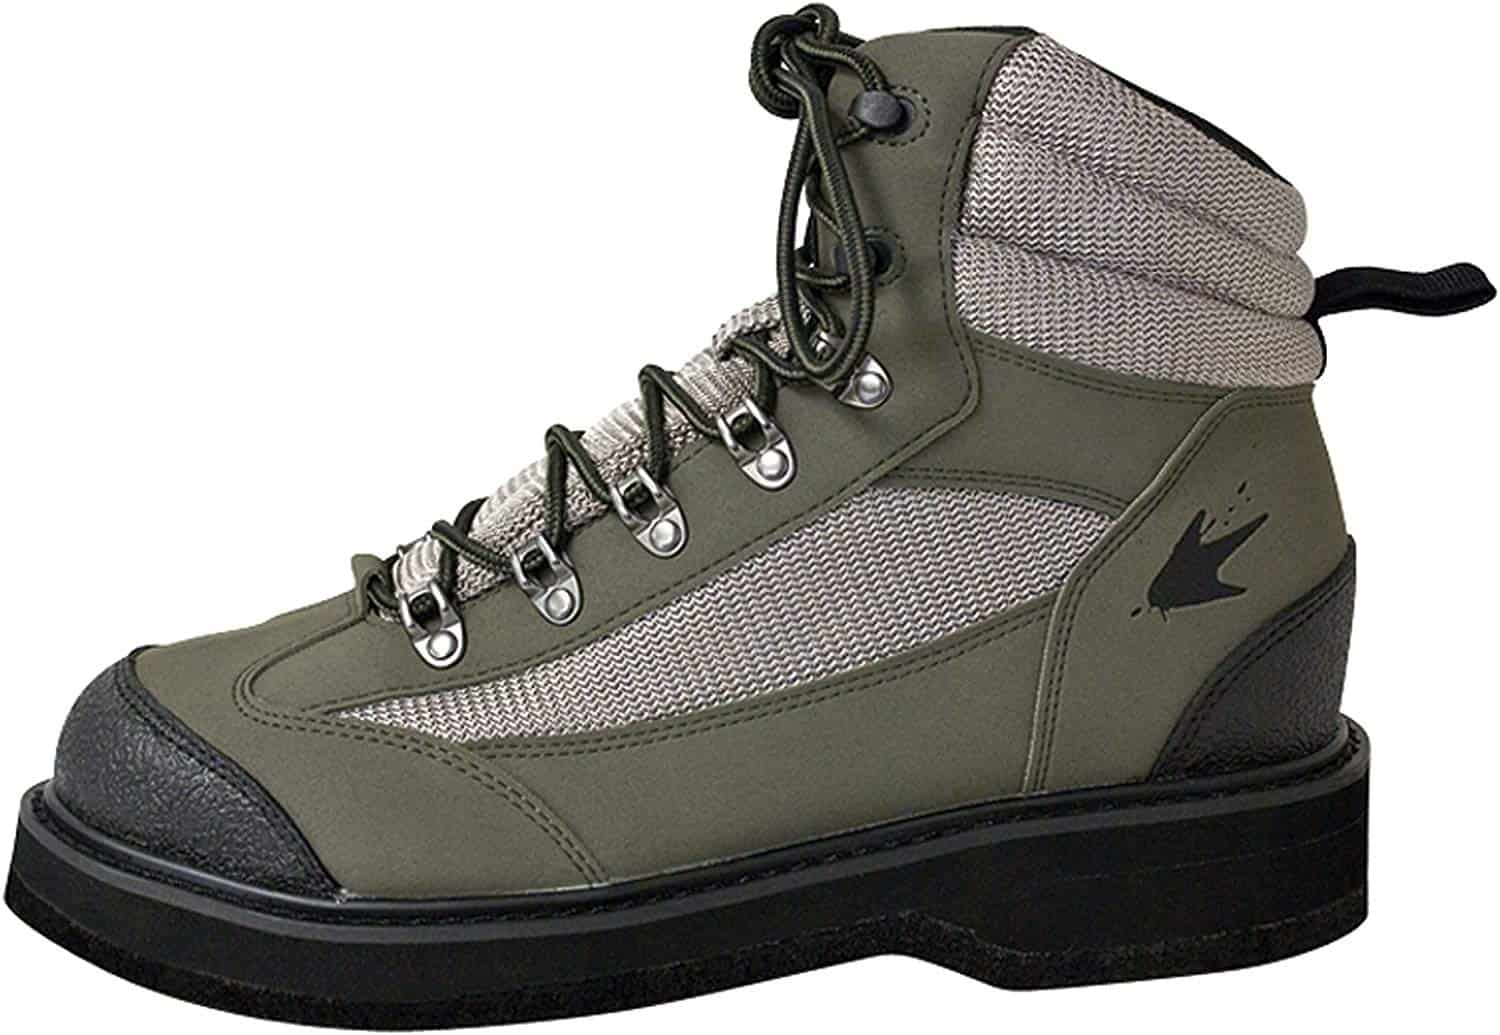 Frogg and Toggs Hellbender Wading Boots